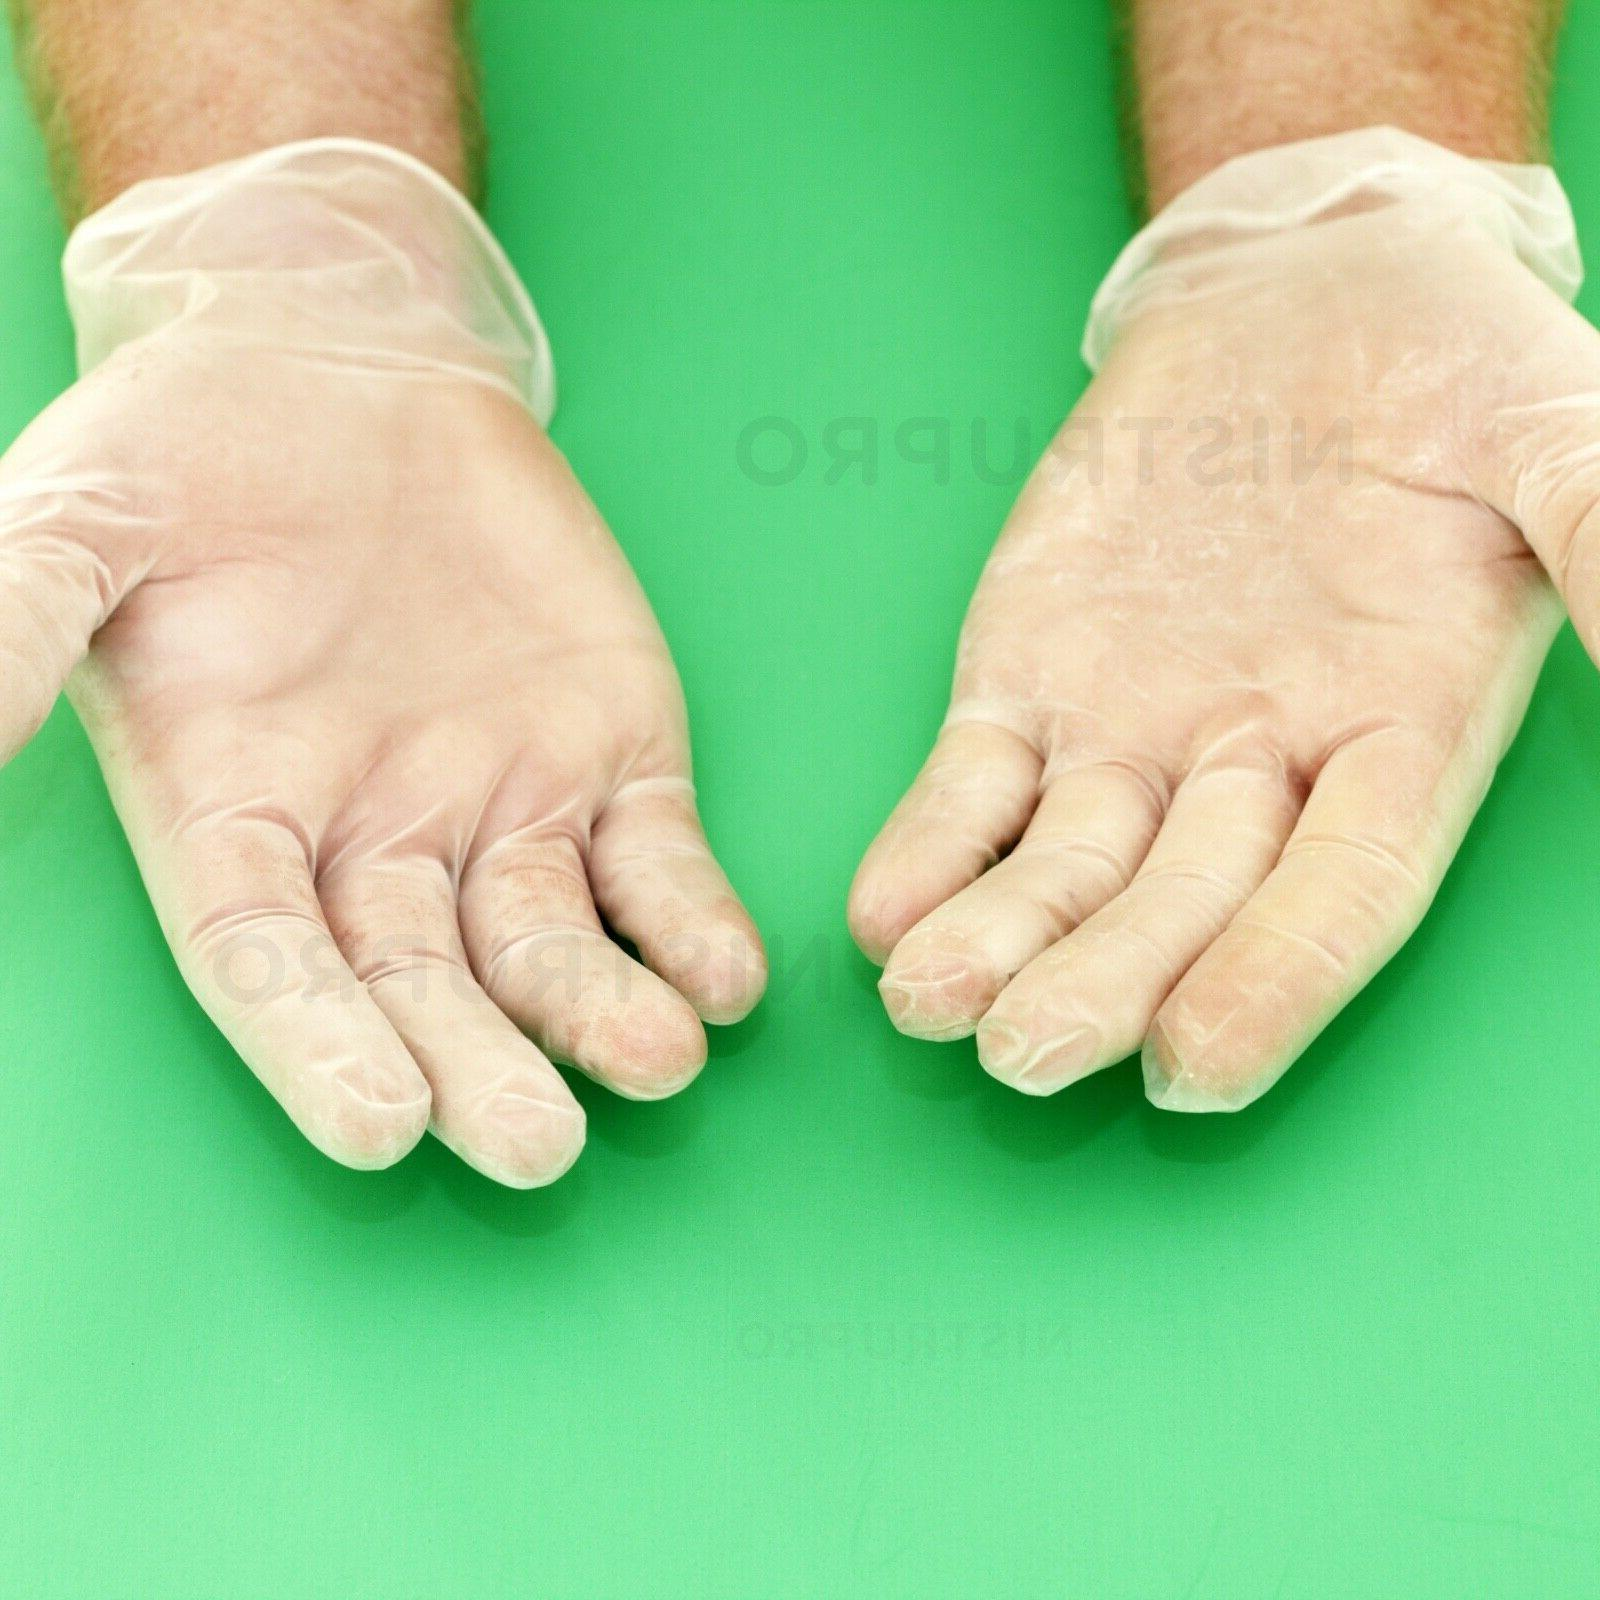 100 PCS Powder-Free Latex-Free GLOVES Non-Sterile MEDIUM, EXTRA LARGE